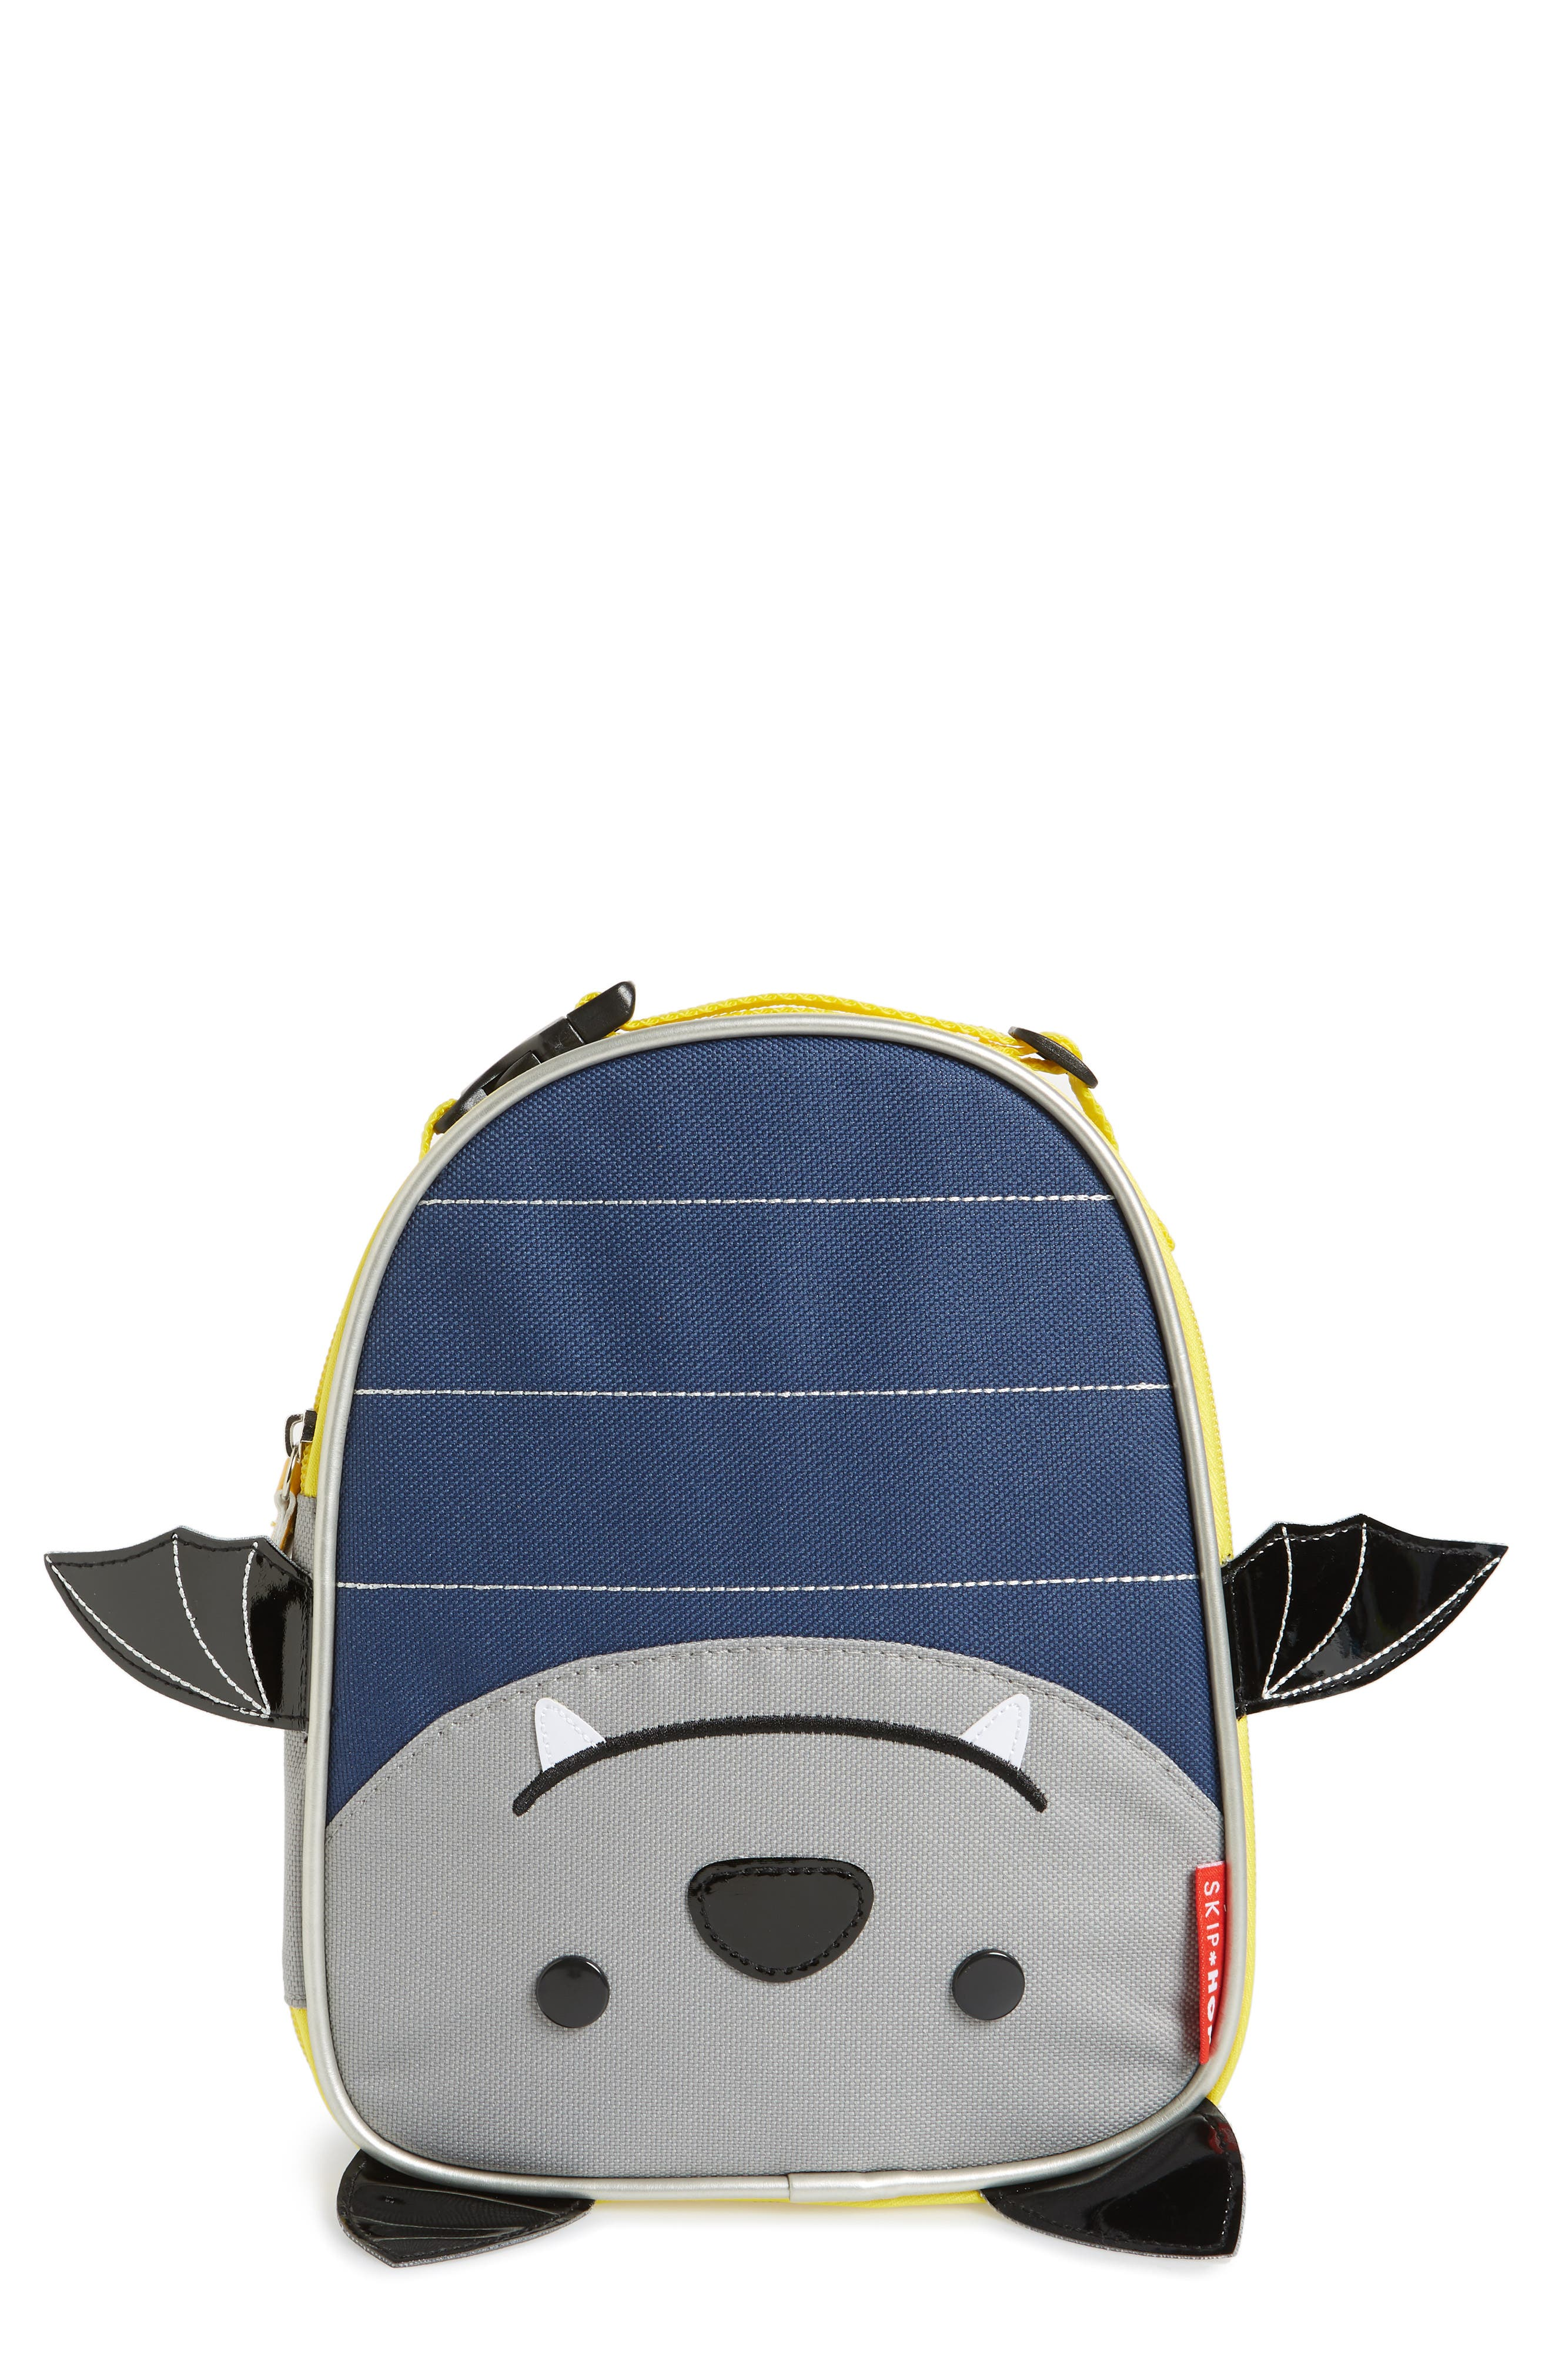 Zoo Lunch Bag,                         Main,                         color, Navy Blue